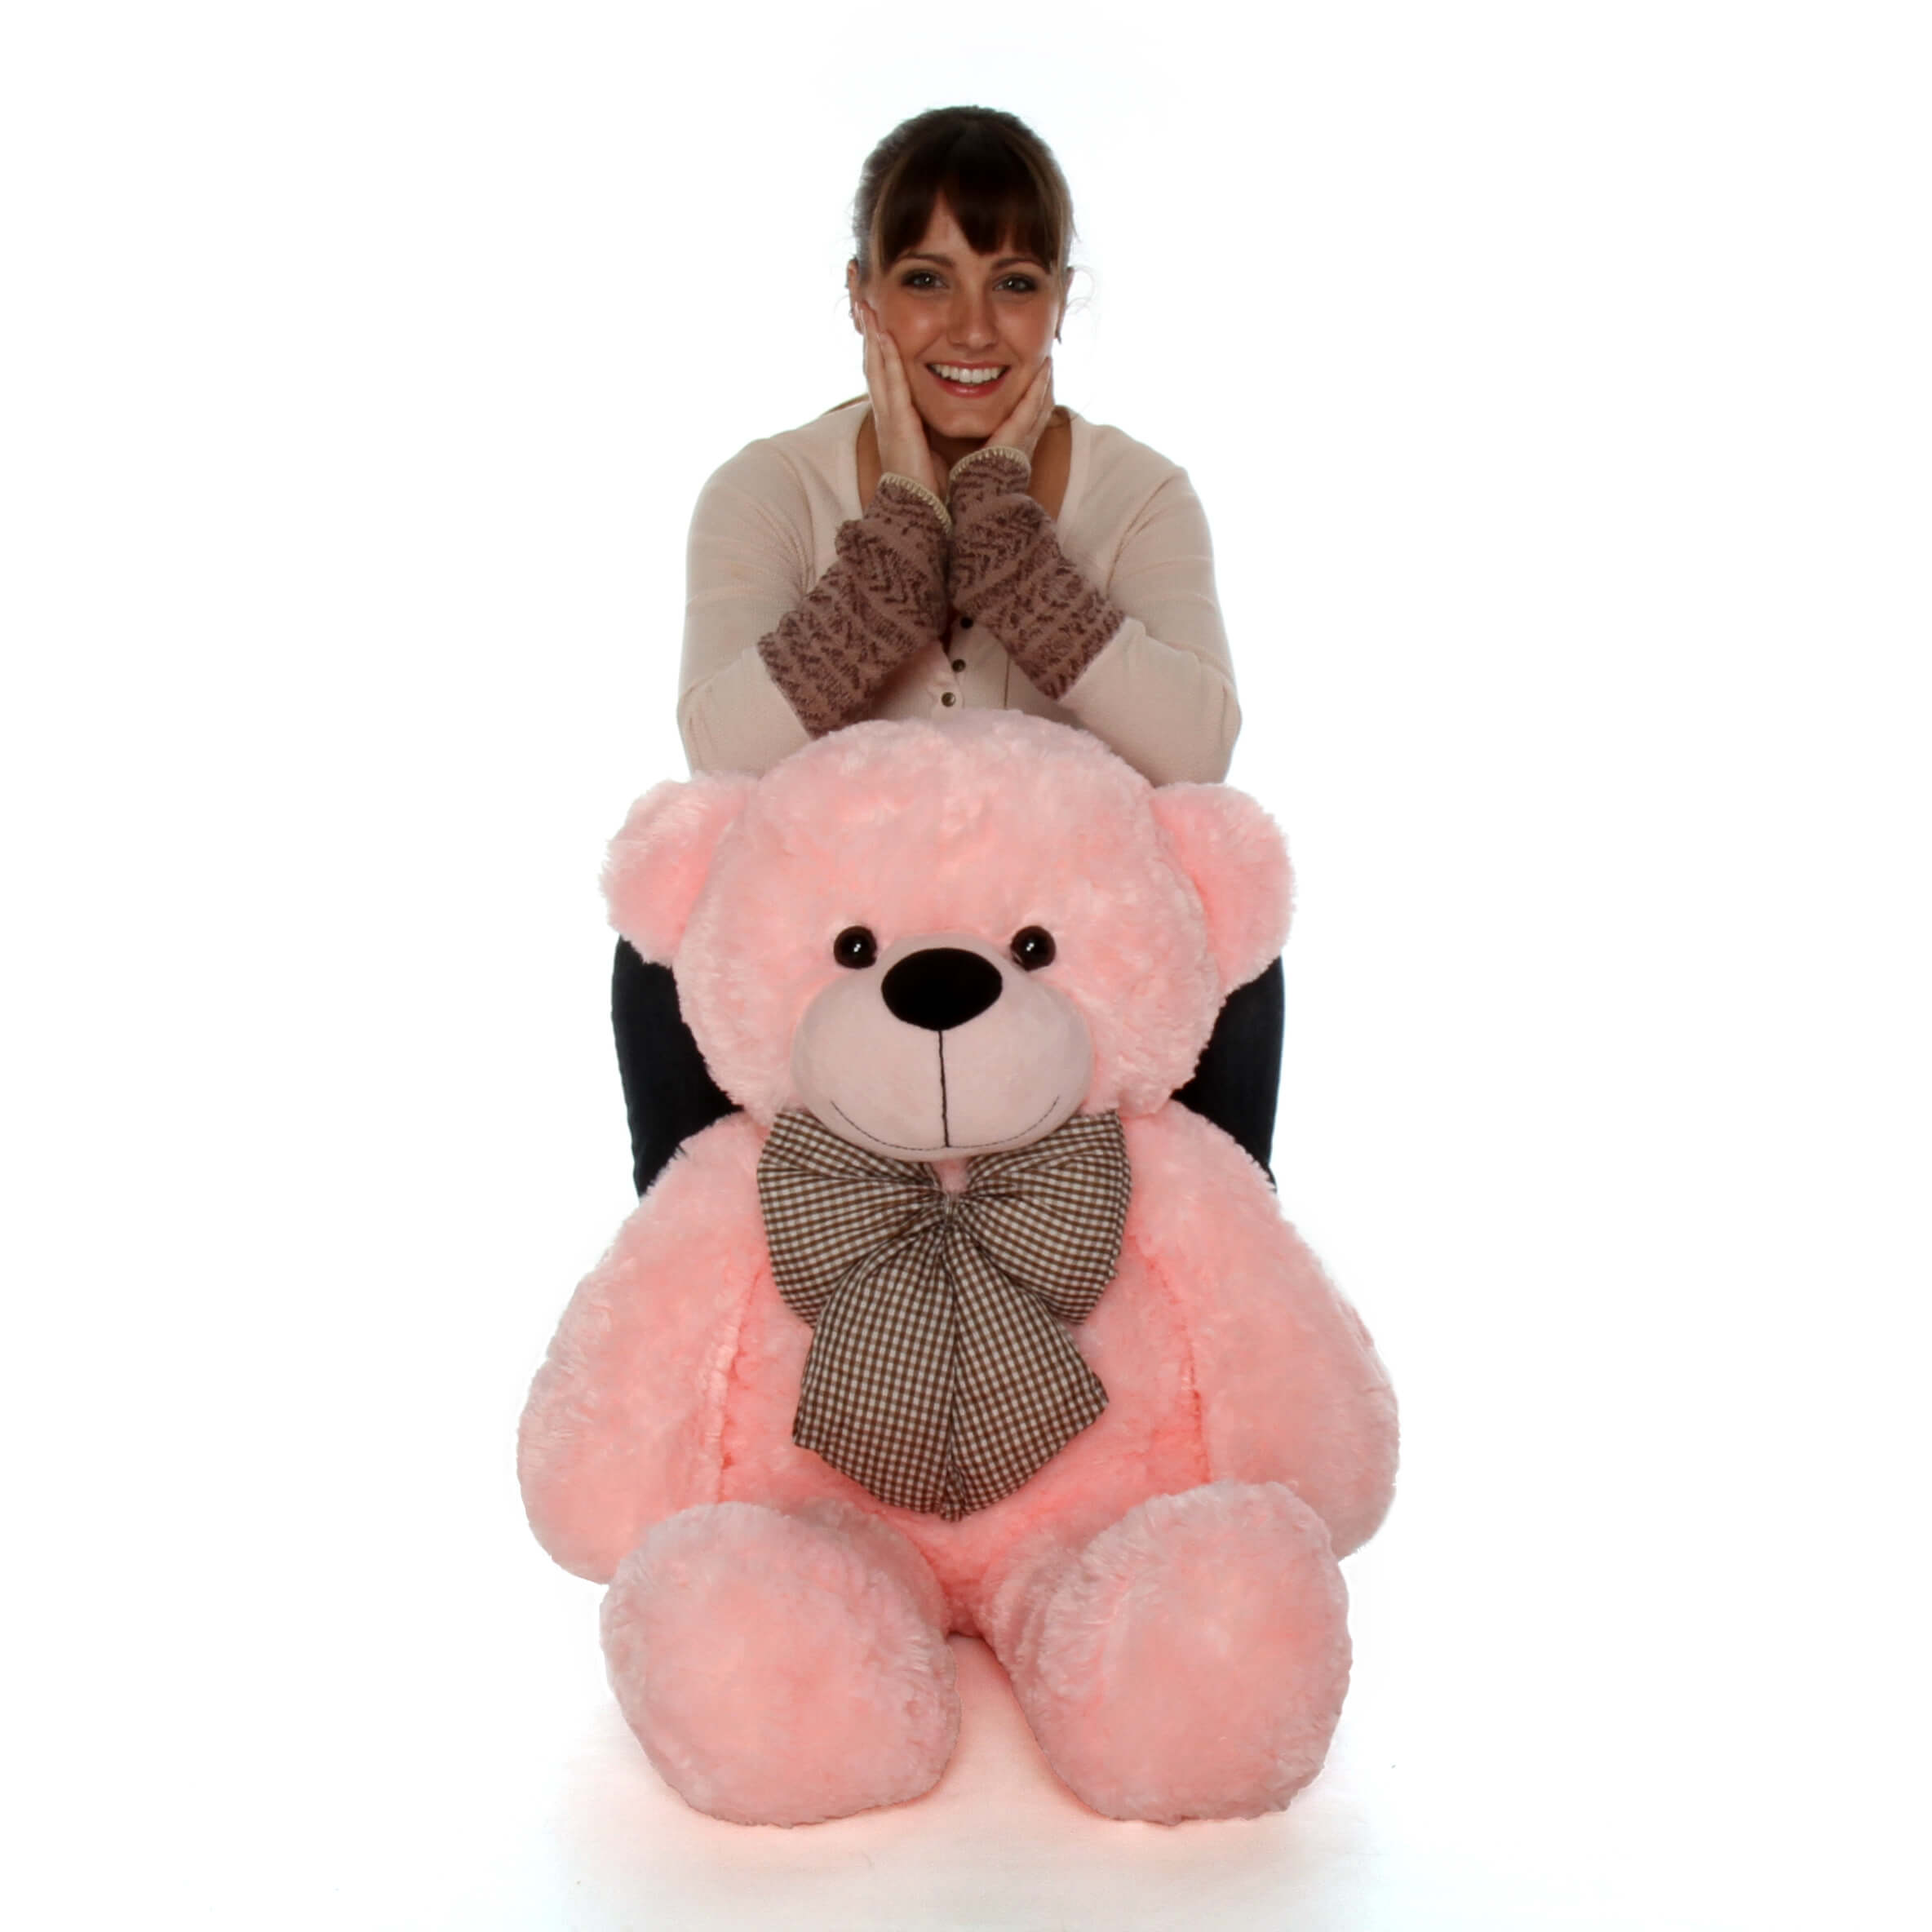 huge-pink-teddy-bear-lady-cuddles-38in-1.jpg